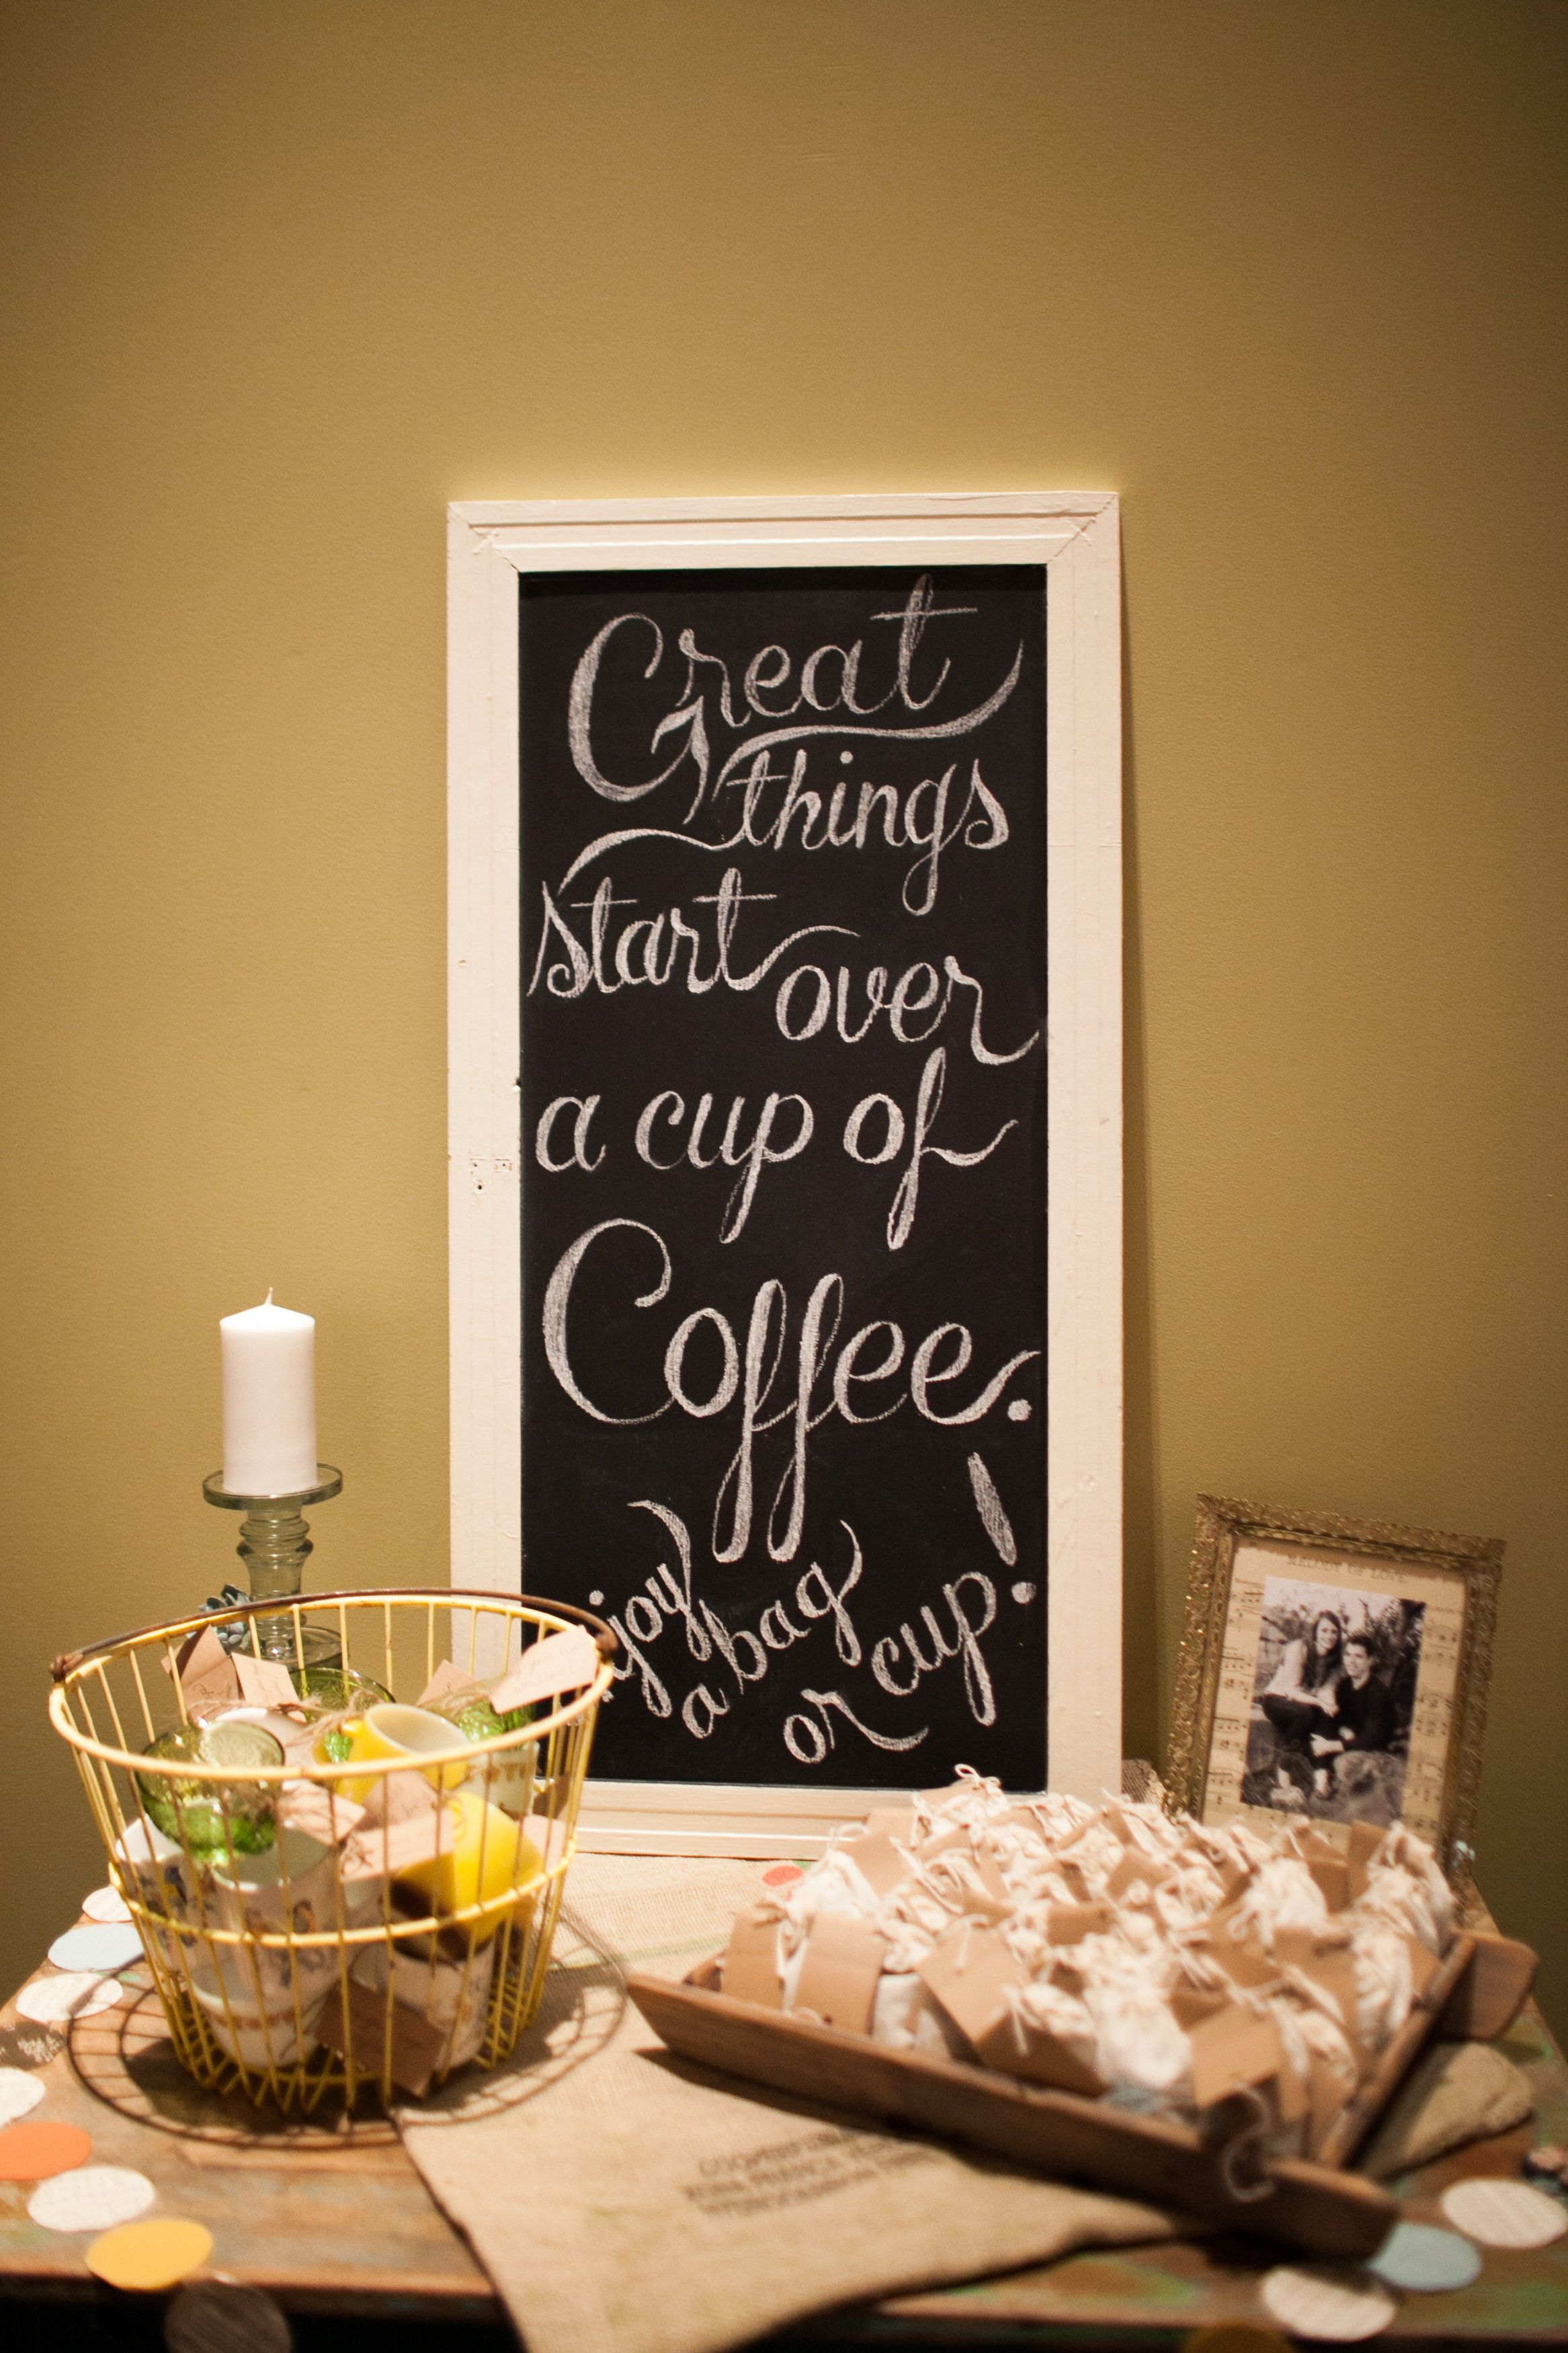 Coffee cup & bags of coffee for favors. Coffee wedding